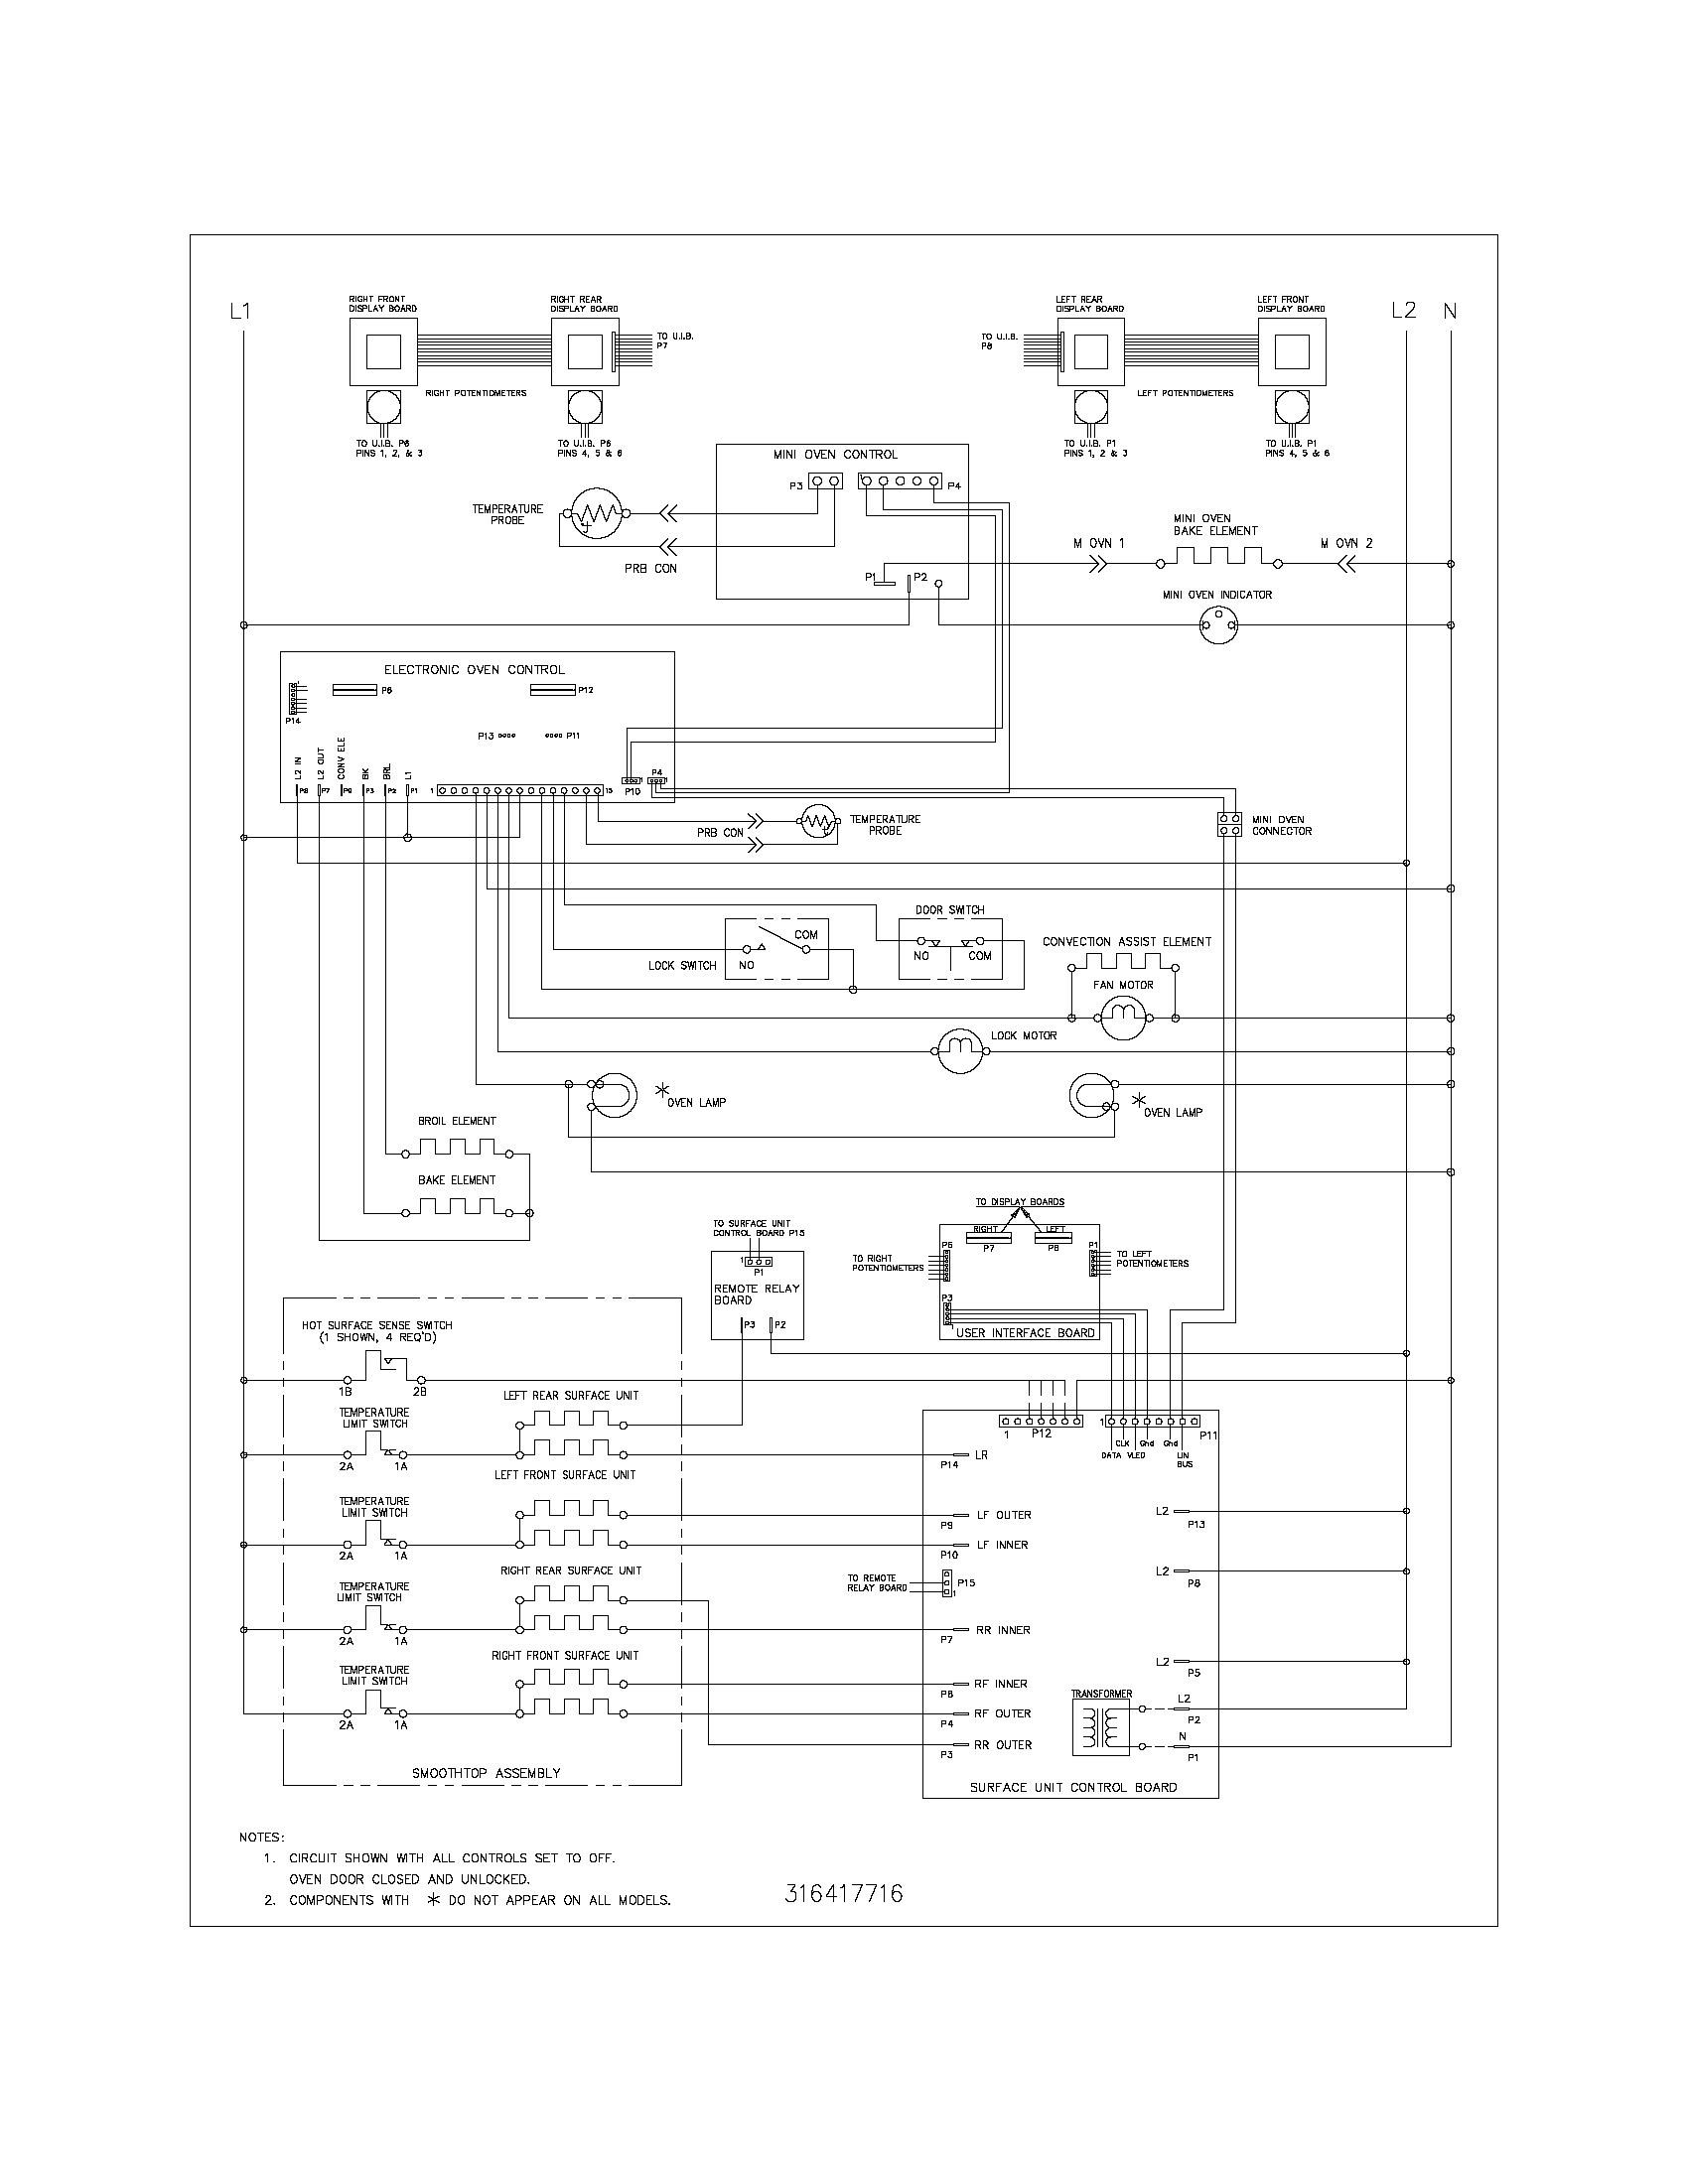 wiring schematic parts odes wiring diagram e z go wiring diagram \u2022 wiring diagrams j wiring diagram for electric fireplace at crackthecode.co